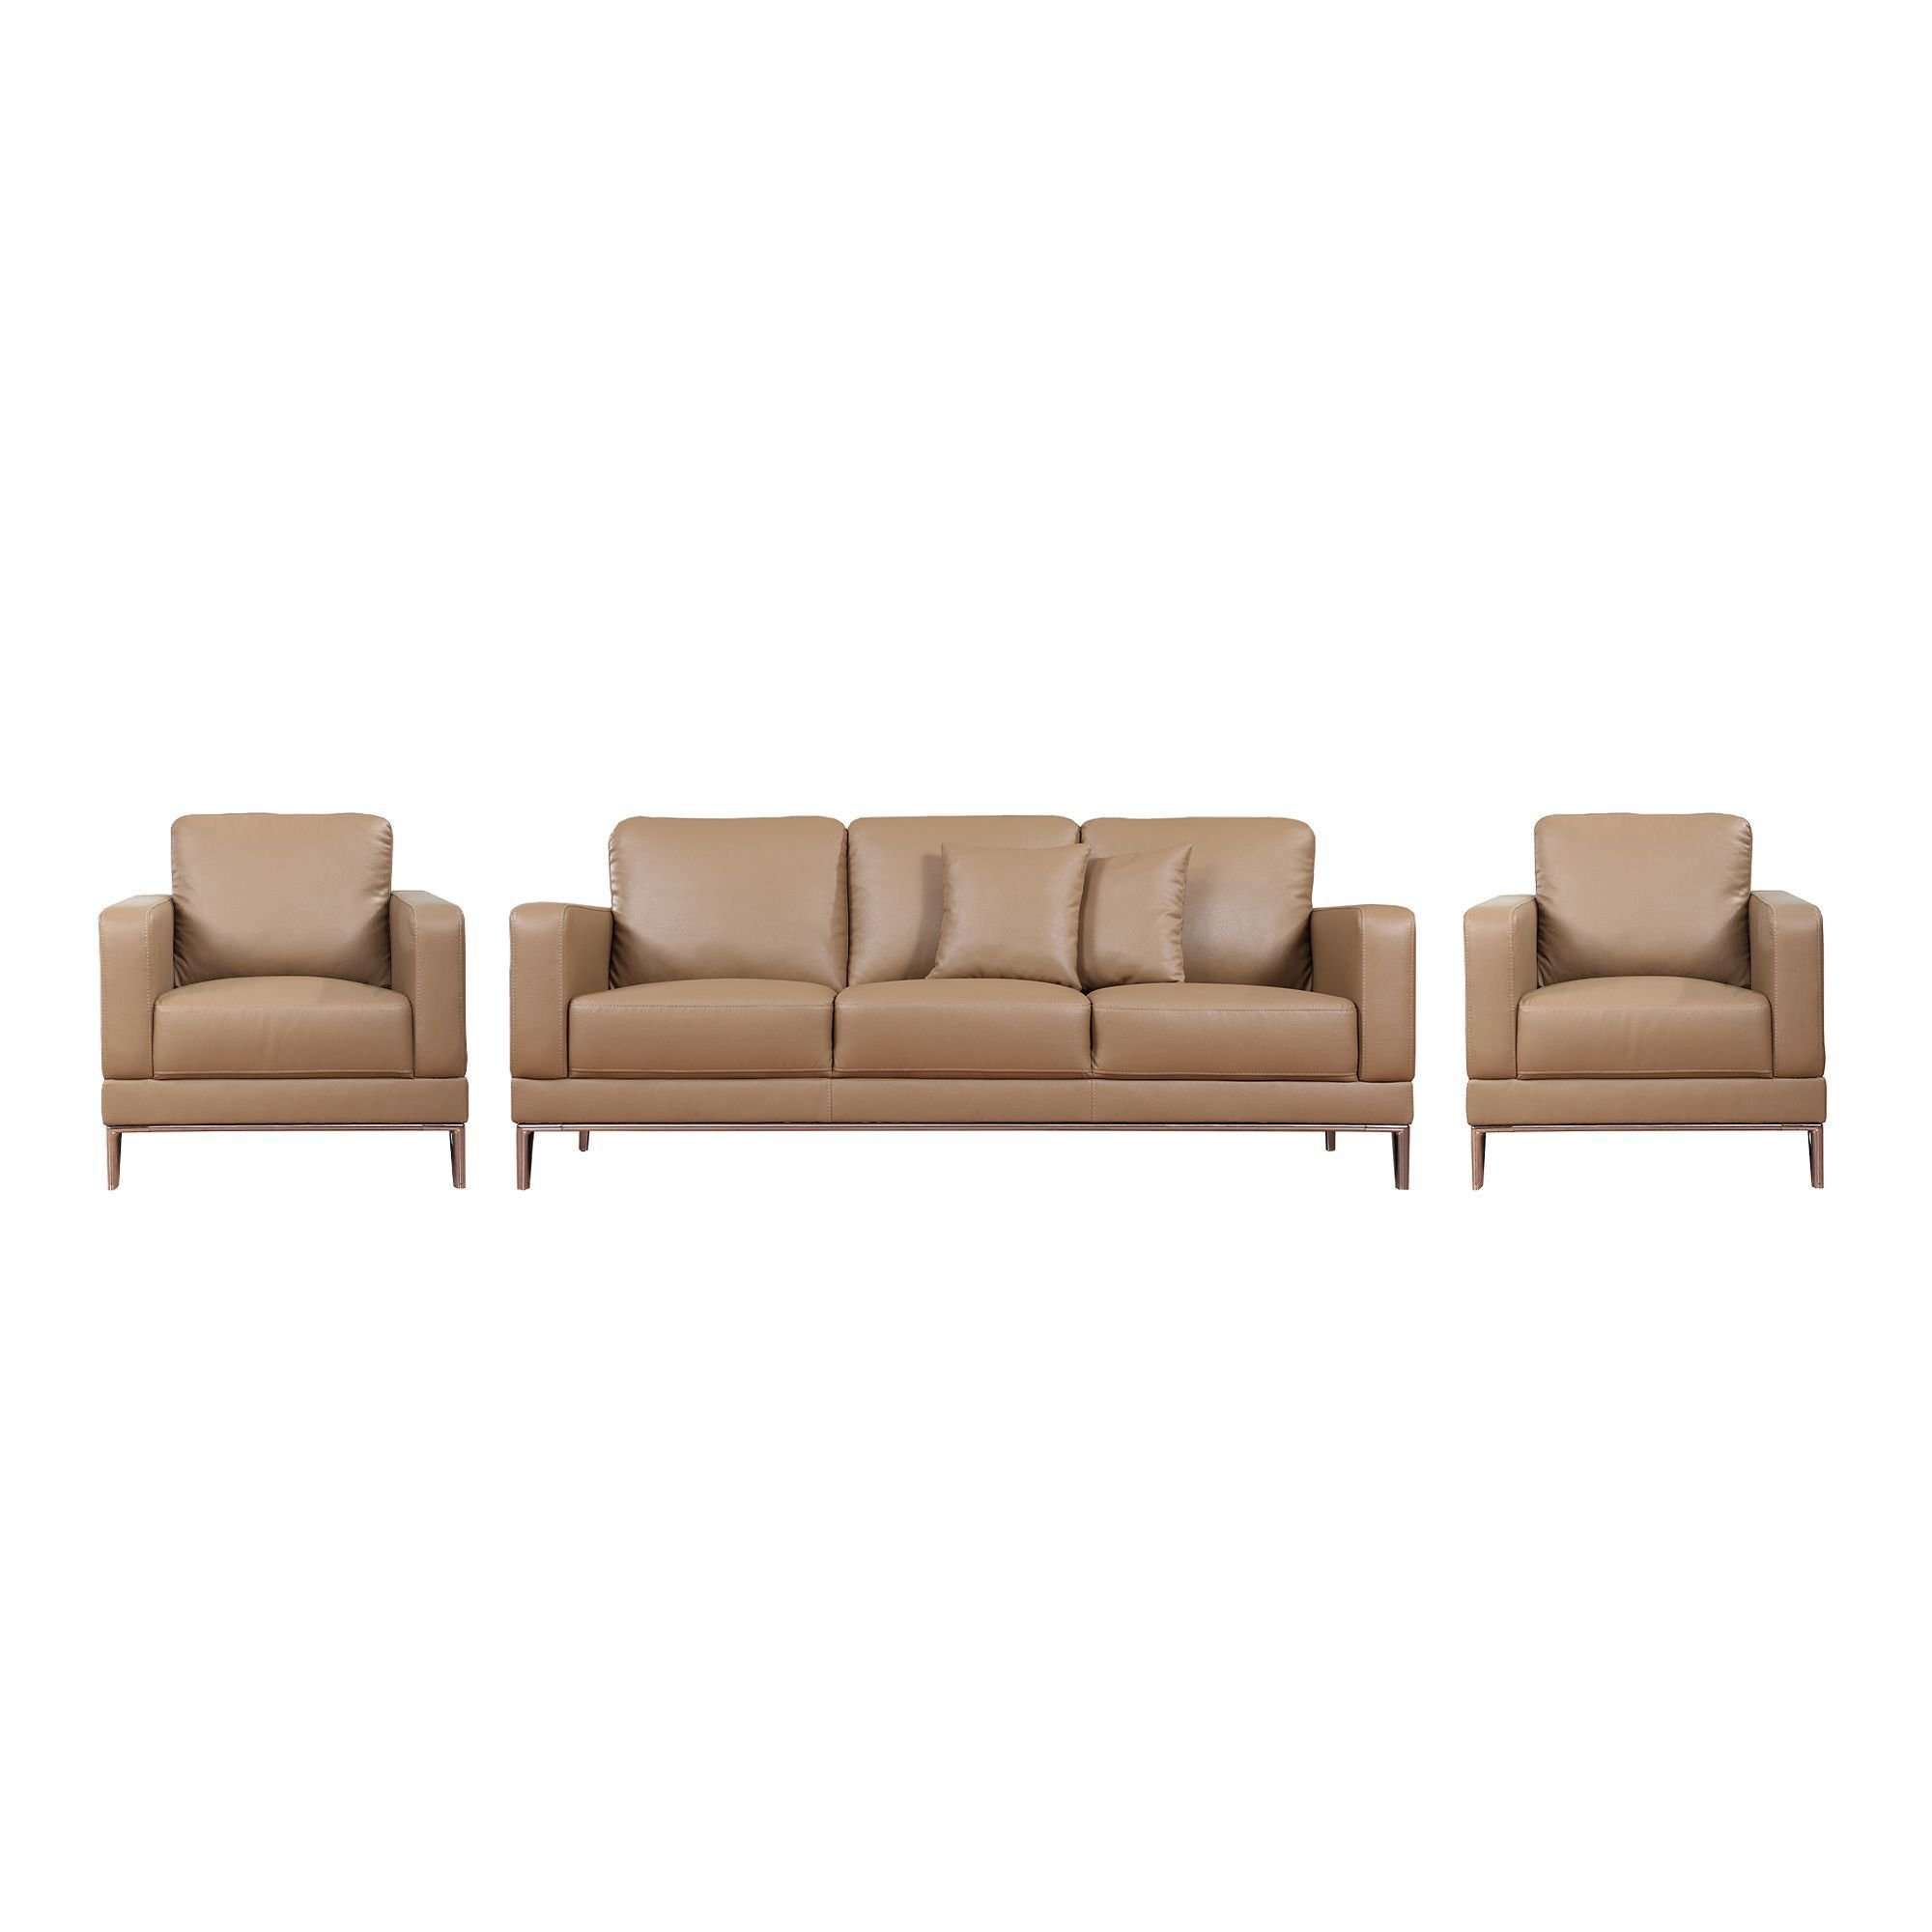 Set Canapea Si 2 Fotolii Kring City Mod 192x90x82 Cm 90x82x83  # Muebles City Club